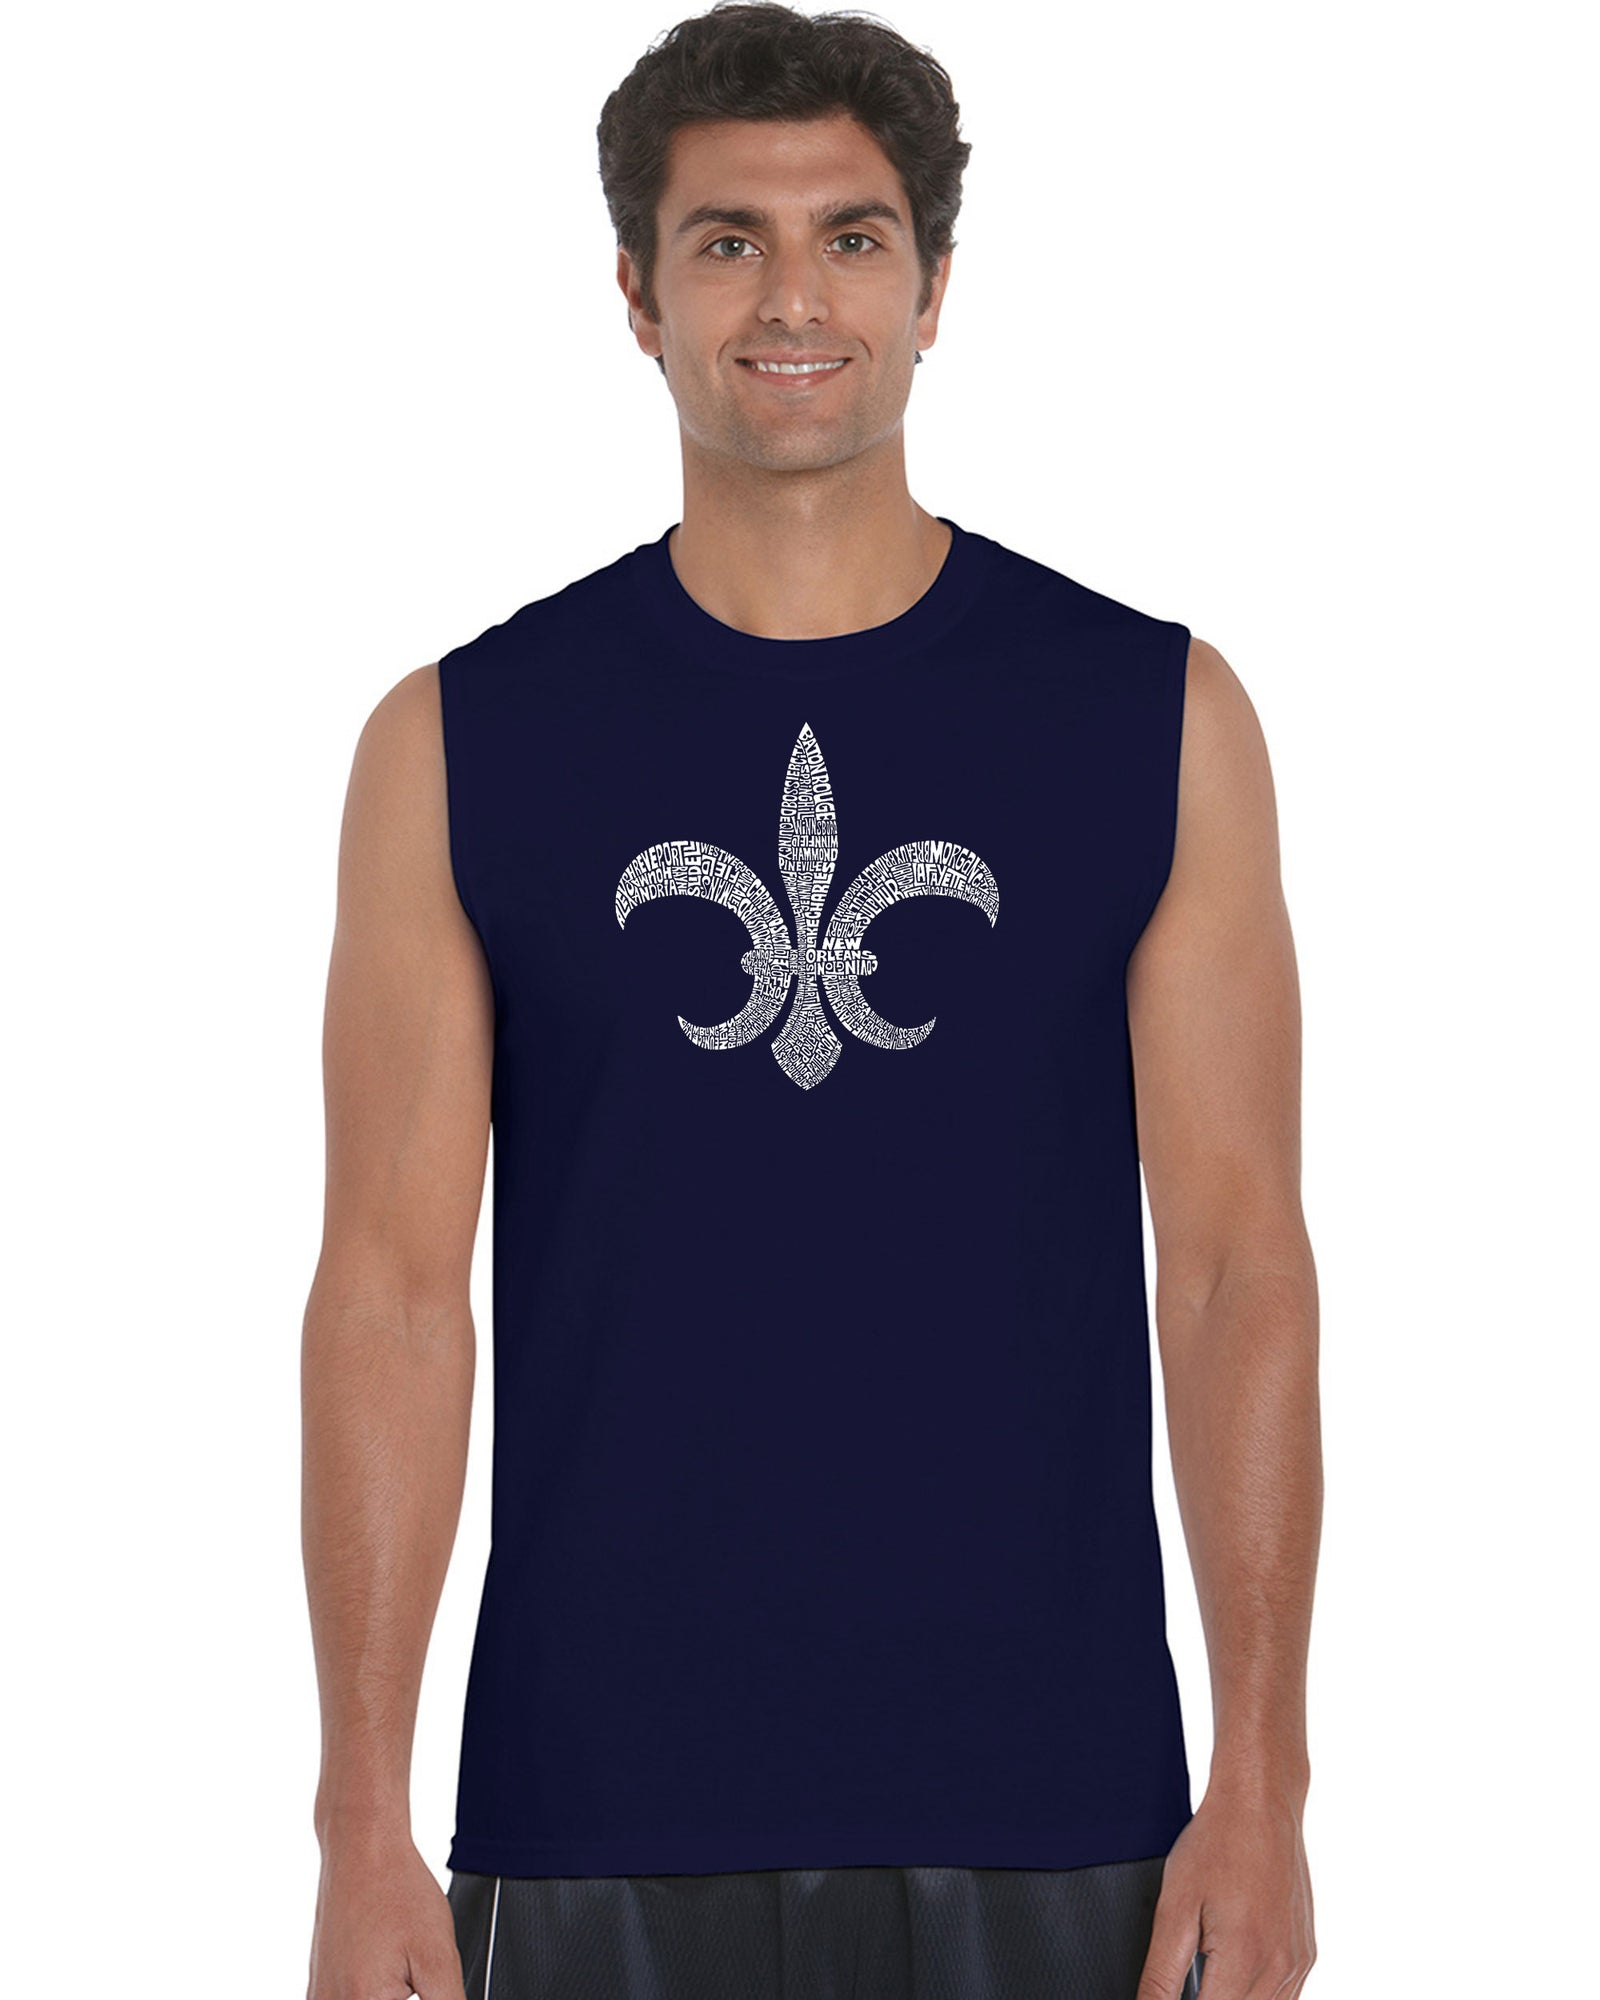 Men's Sleeveless T-shirt - FLEUR DE LIS - POPULAR LOUISIANA CITIES